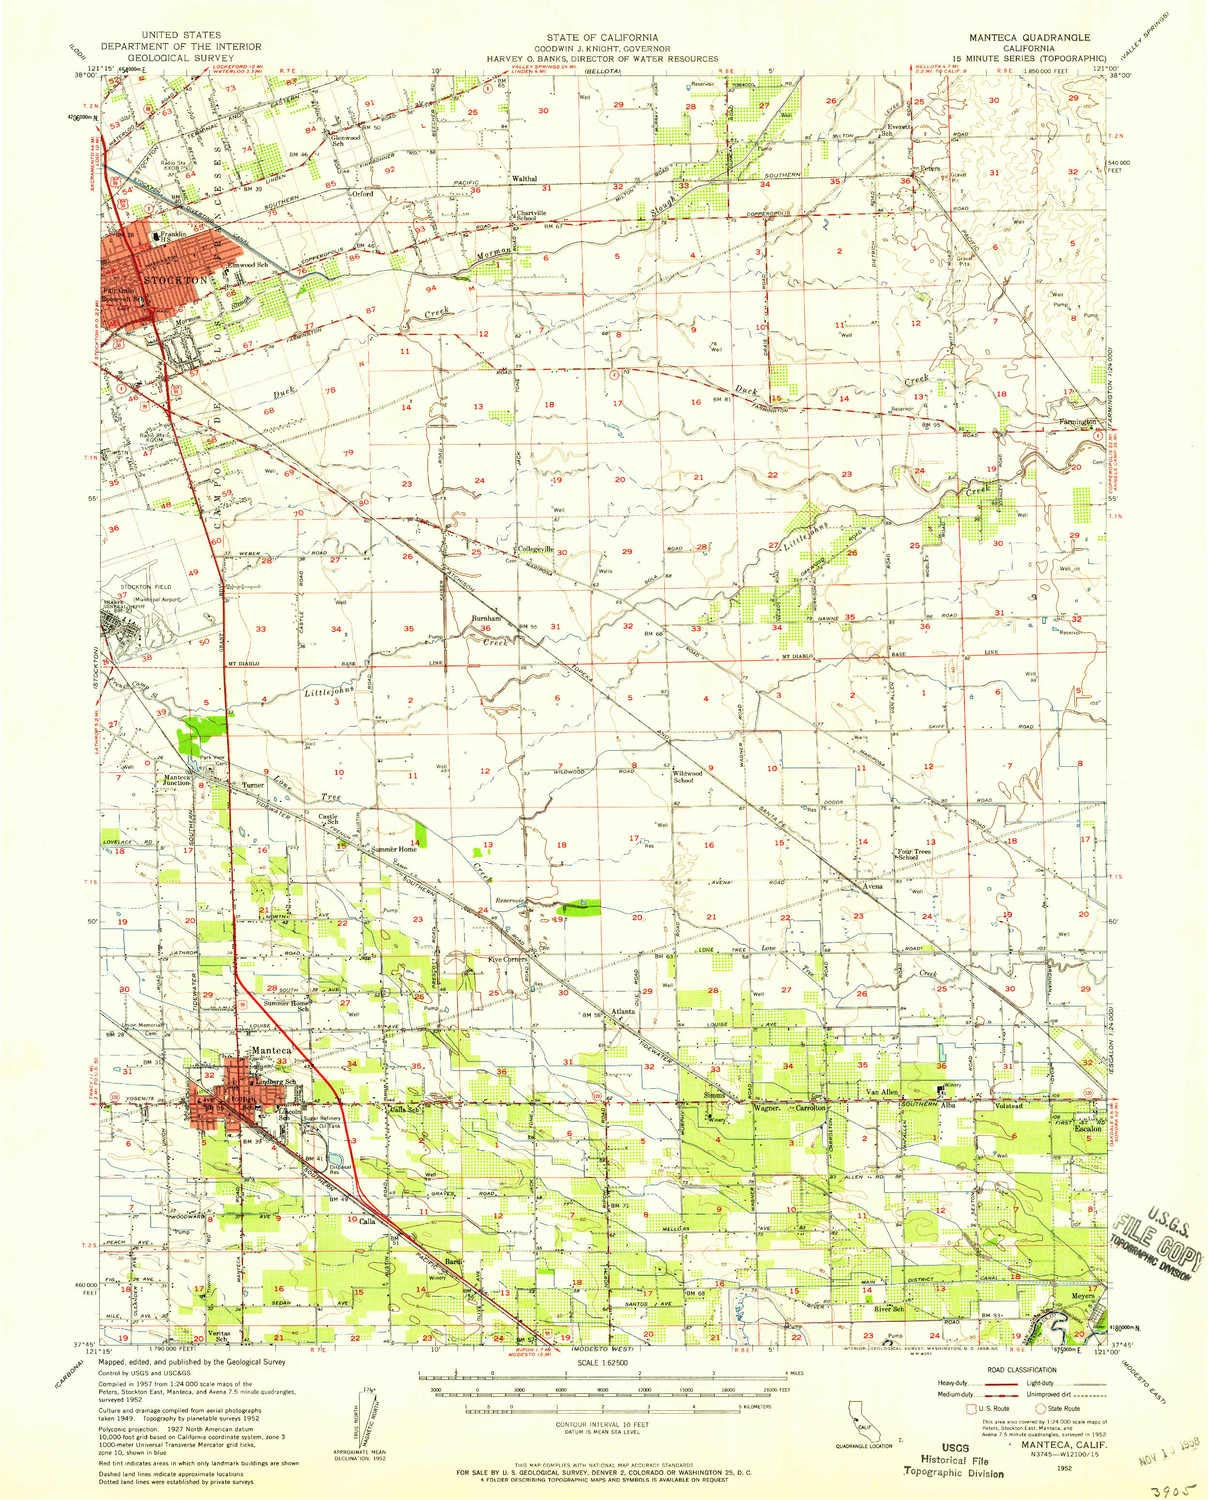 Amazon.com : YellowMaps Manteca CA topo map, 1:62500 Scale ... on westminster ca map, fairfield ca map, dublin ca map, united states ca map, mt hamilton ca map, manteca california, old station ca map, livermore valley ca map, santa rosa ca map, san rafael ca zip code map, templeton ca map, lowell ca map, san lorenzo valley ca map, oregon house ca map, rio del mar ca map, tucson ca map, manteca crime, california map, vacaville ca map, escondido ca map,